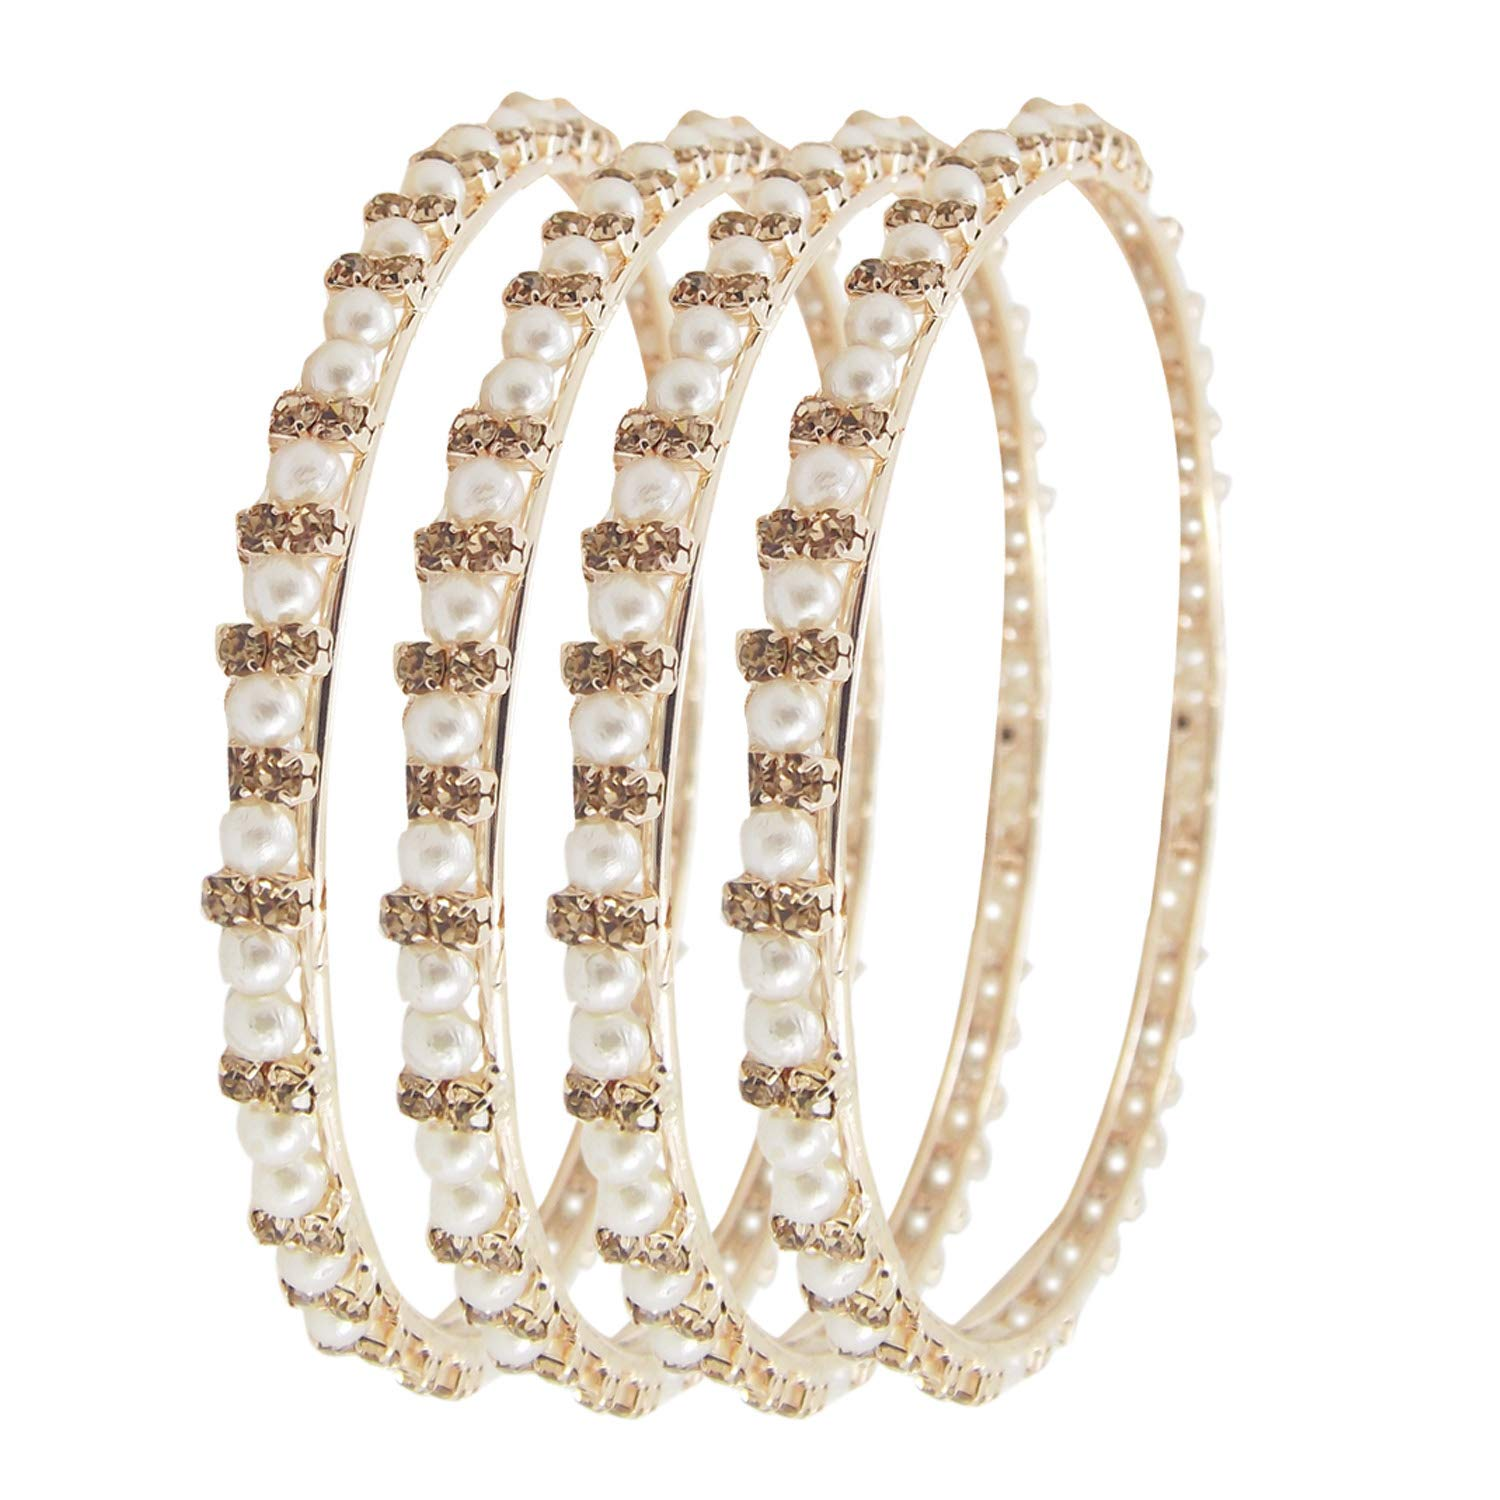 Biyu Pearl Collection LCT CZ Gold Plated Stone 4pc Bangles for Womens Girls